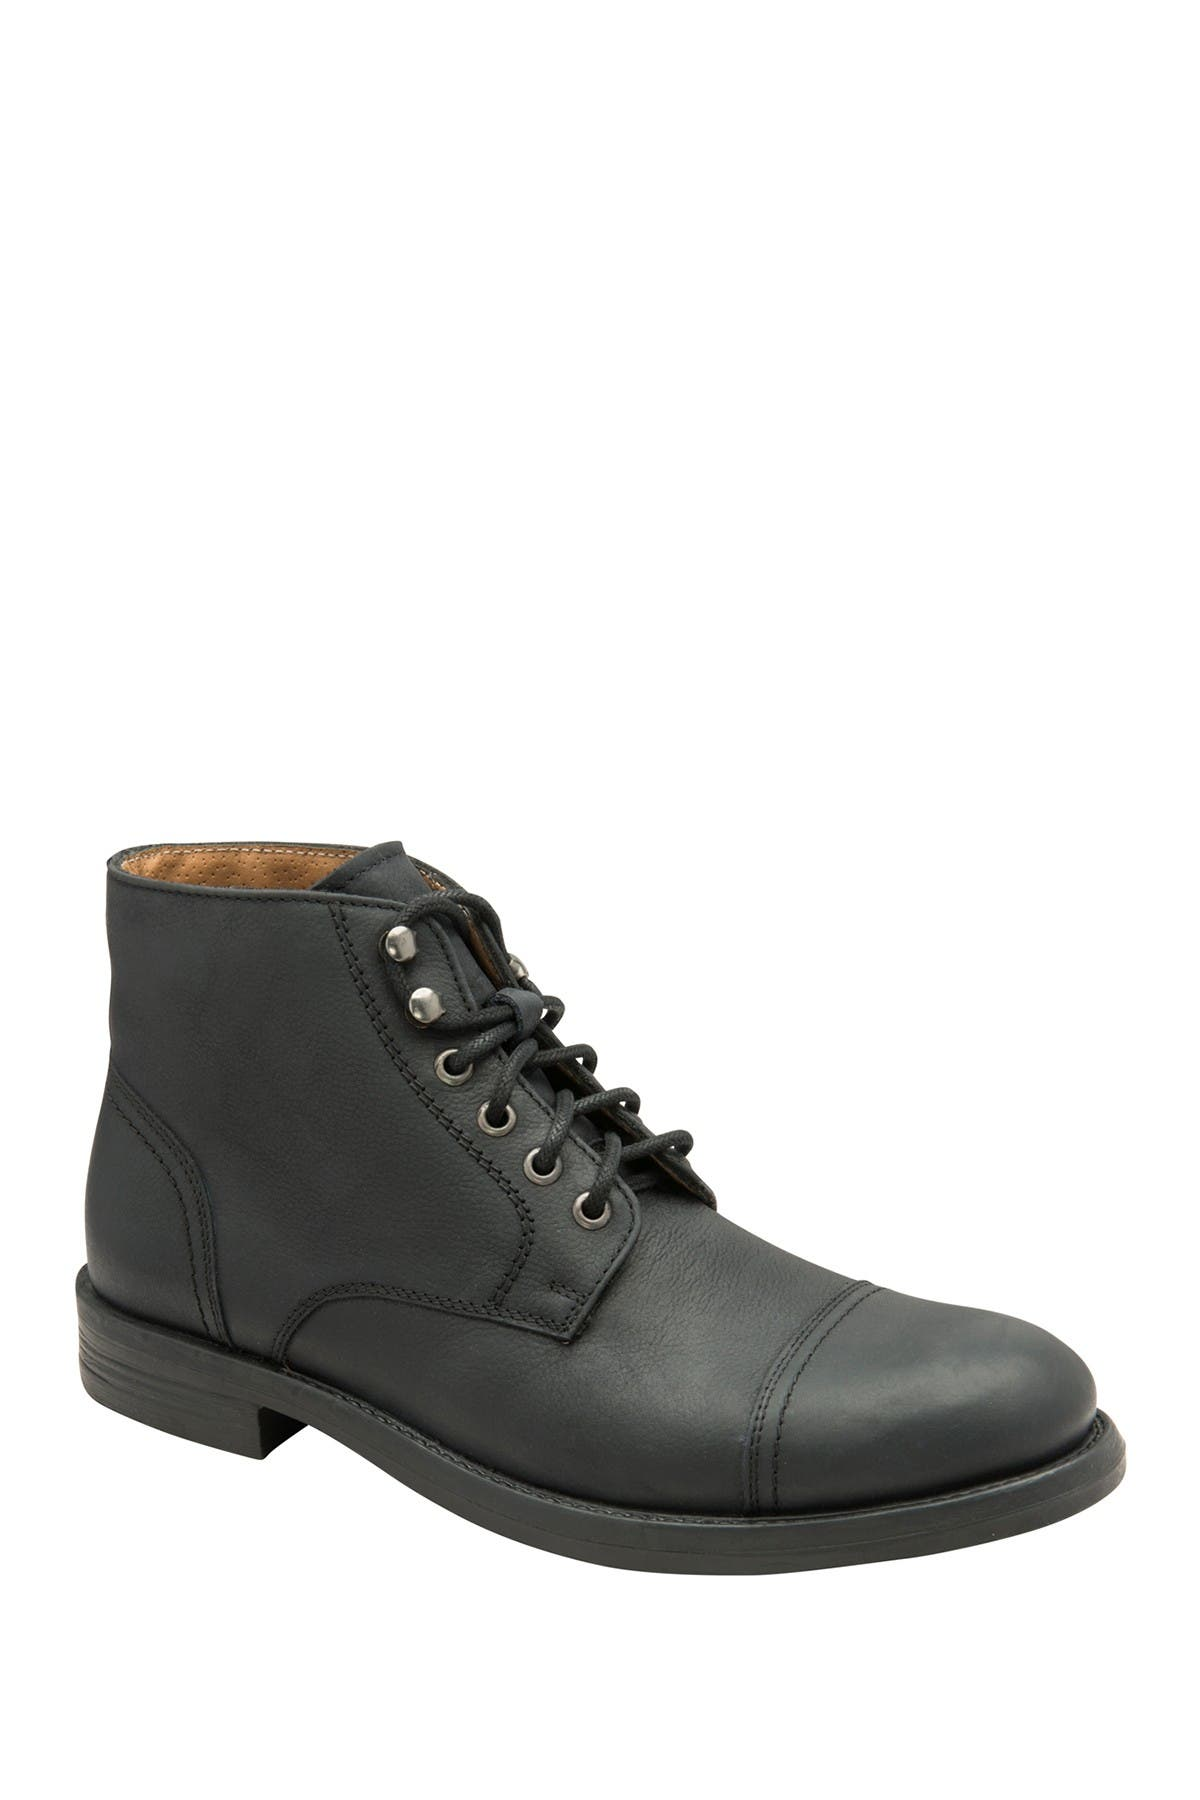 Image of Frank Wright Lancelot Leather Boot